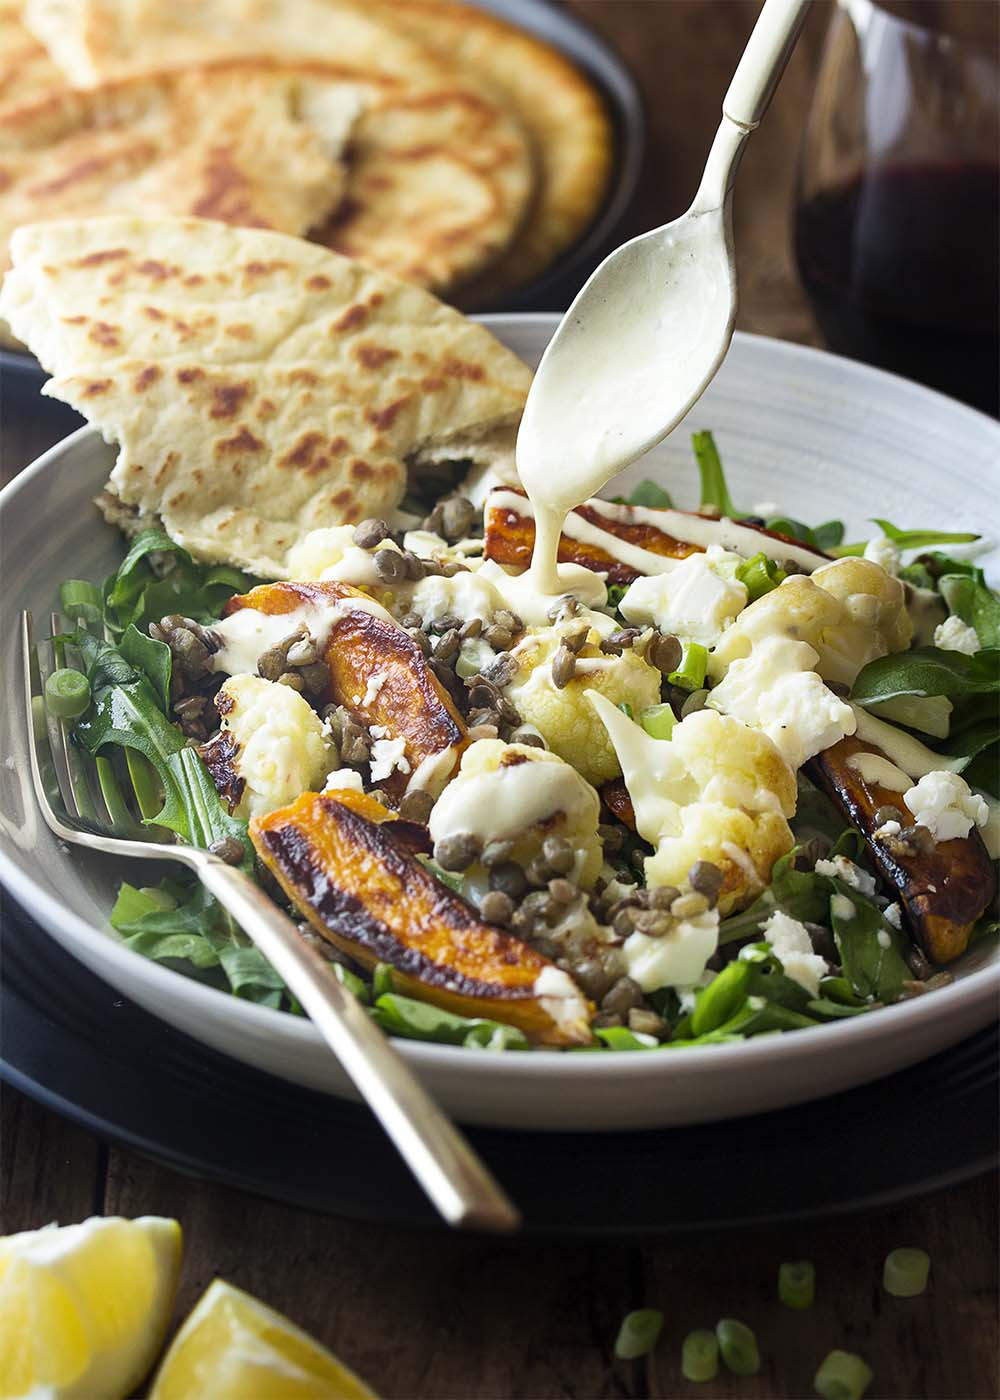 A spoon drizzling creamy yogurt tahini dressing over a bowl filled with sweet potato, cauliflower, and lentil salad.